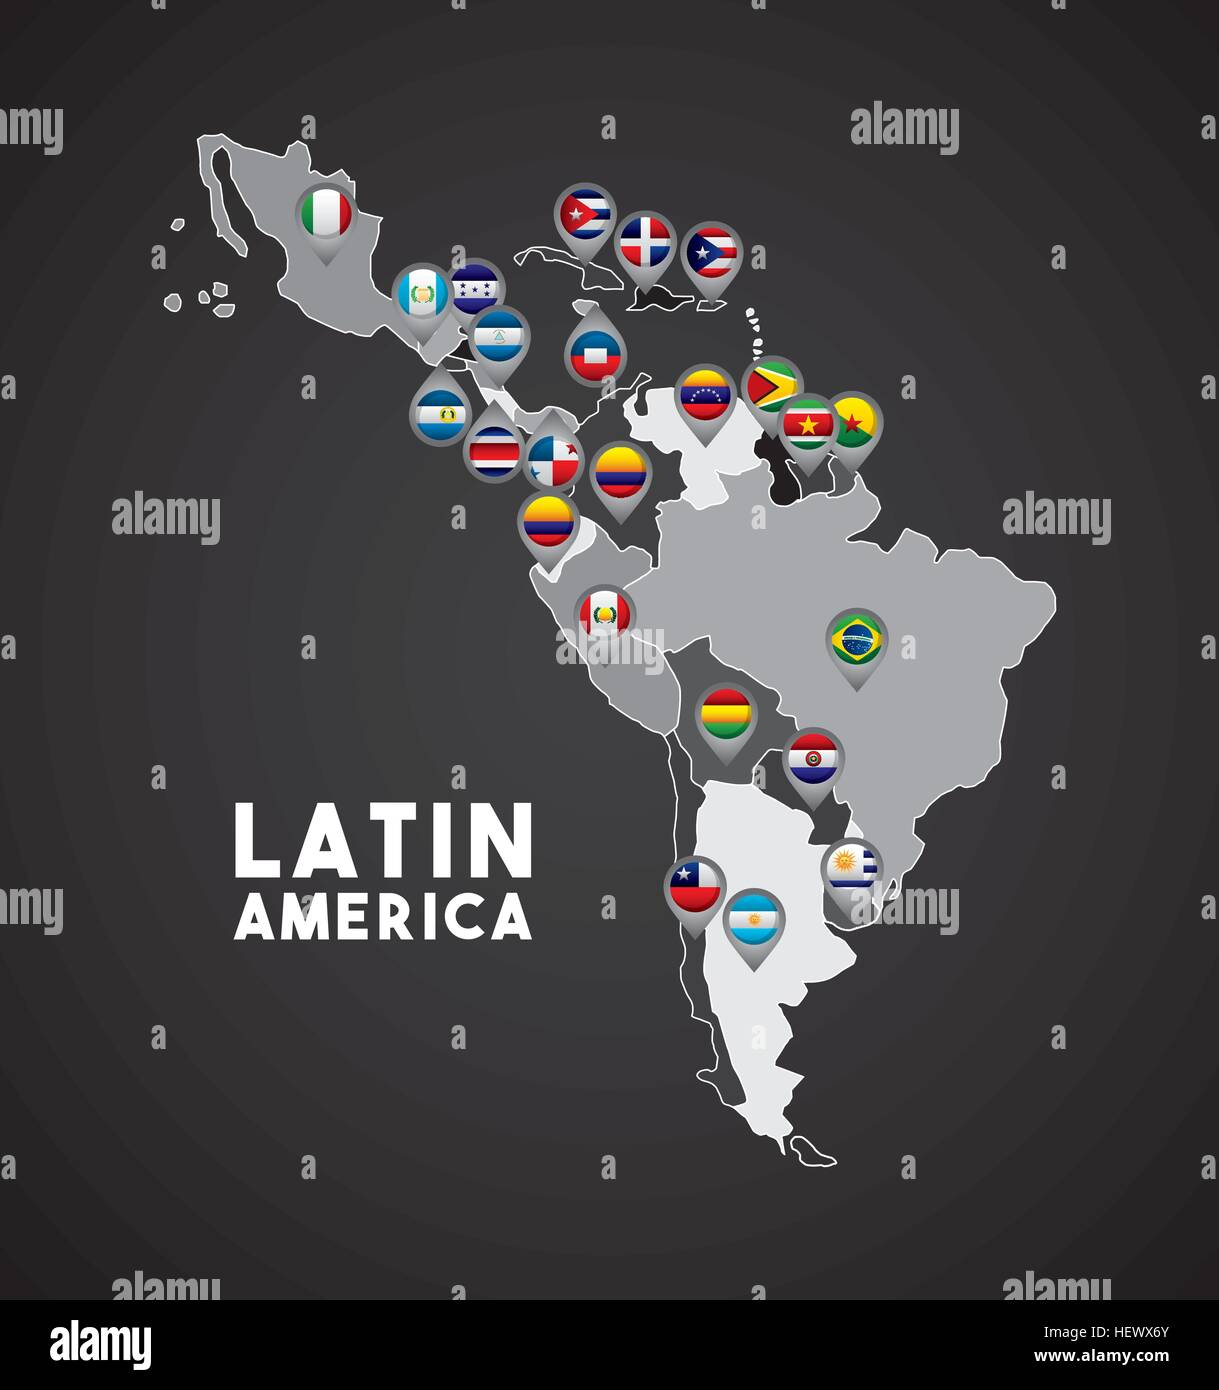 Map of latin america with the flags of countries on location pins map of latin america with the flags of countries on location pins colorful design vector illustration gumiabroncs Images